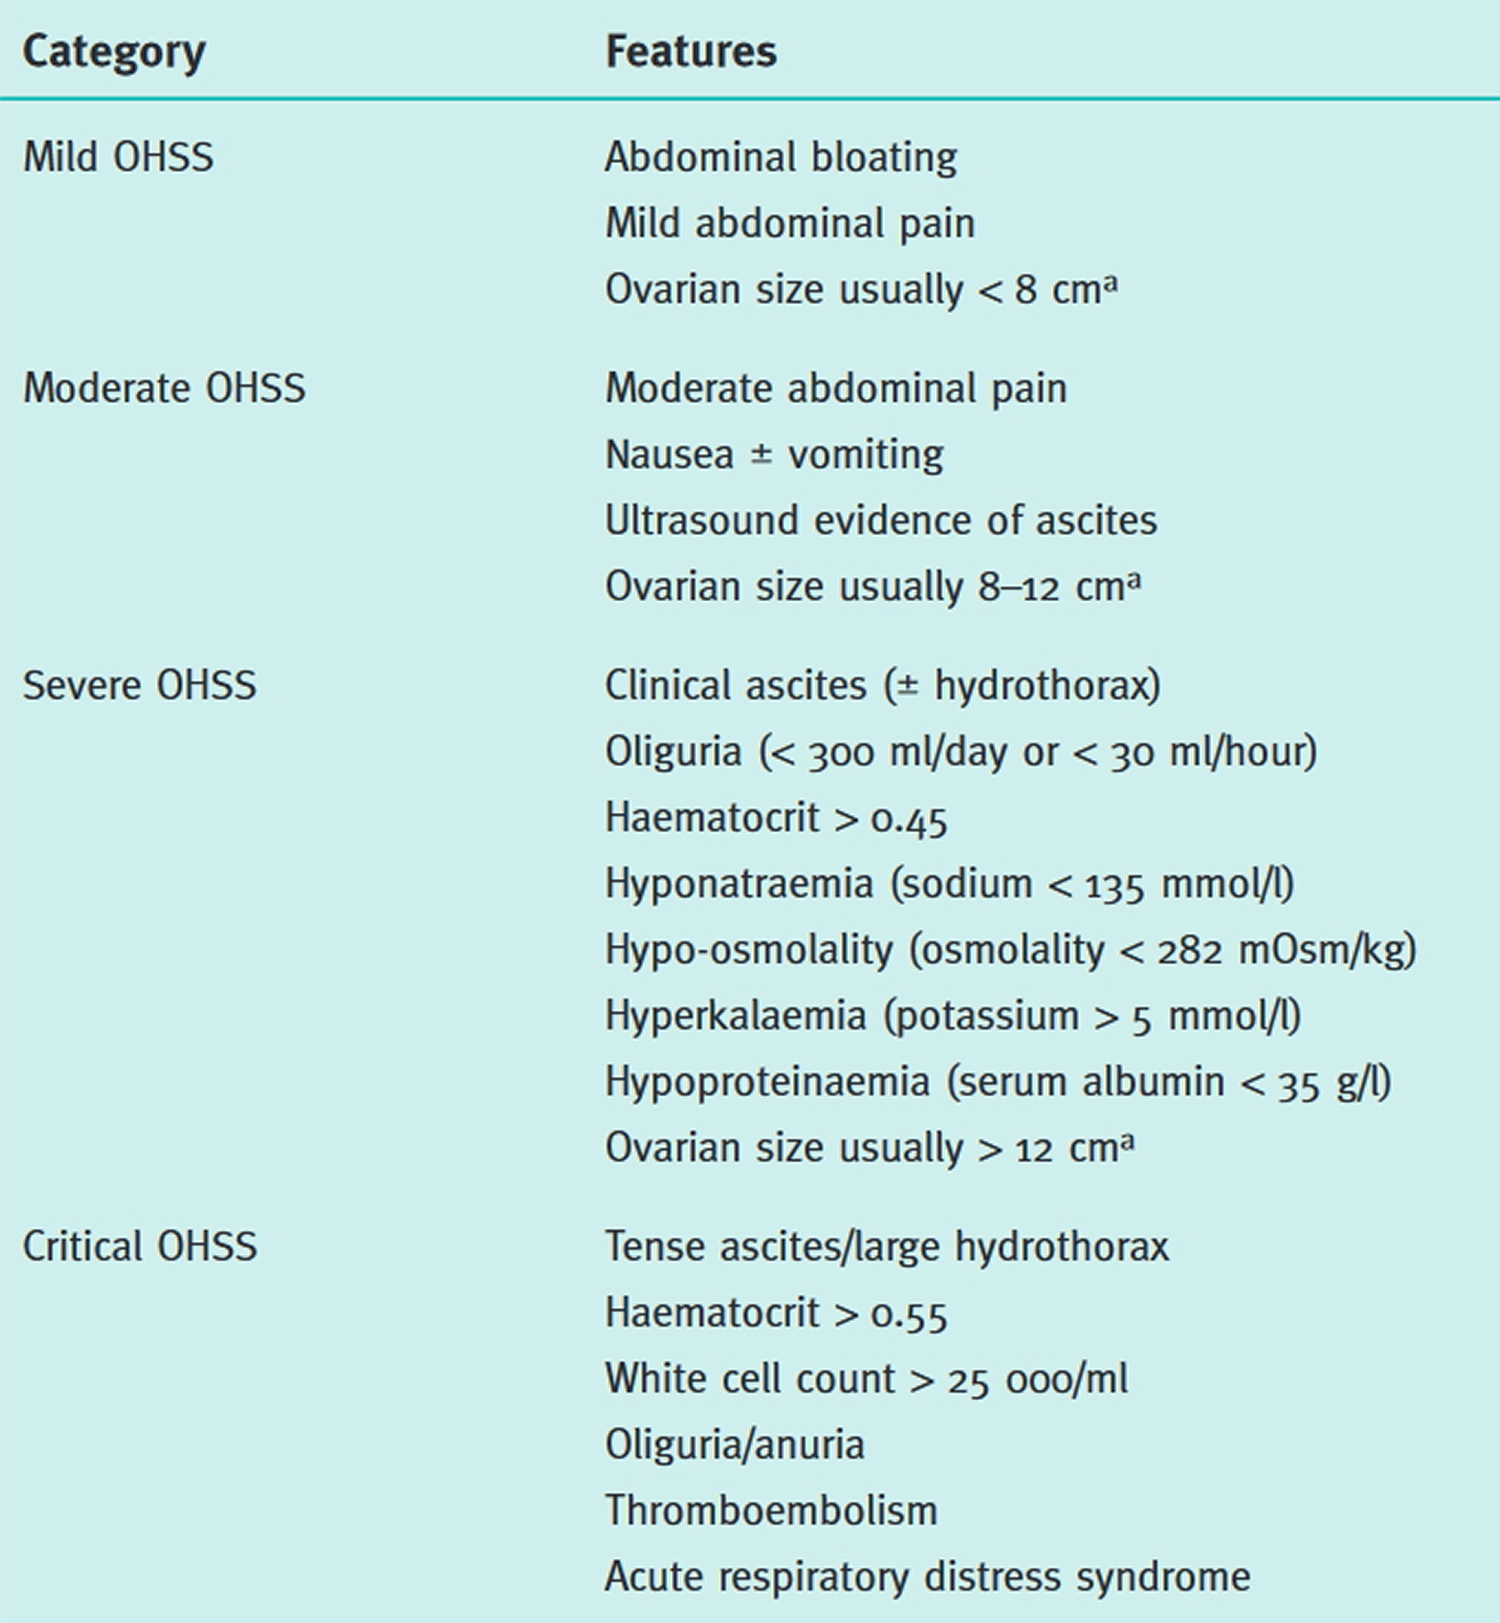 Proposed classification of OHSS severity